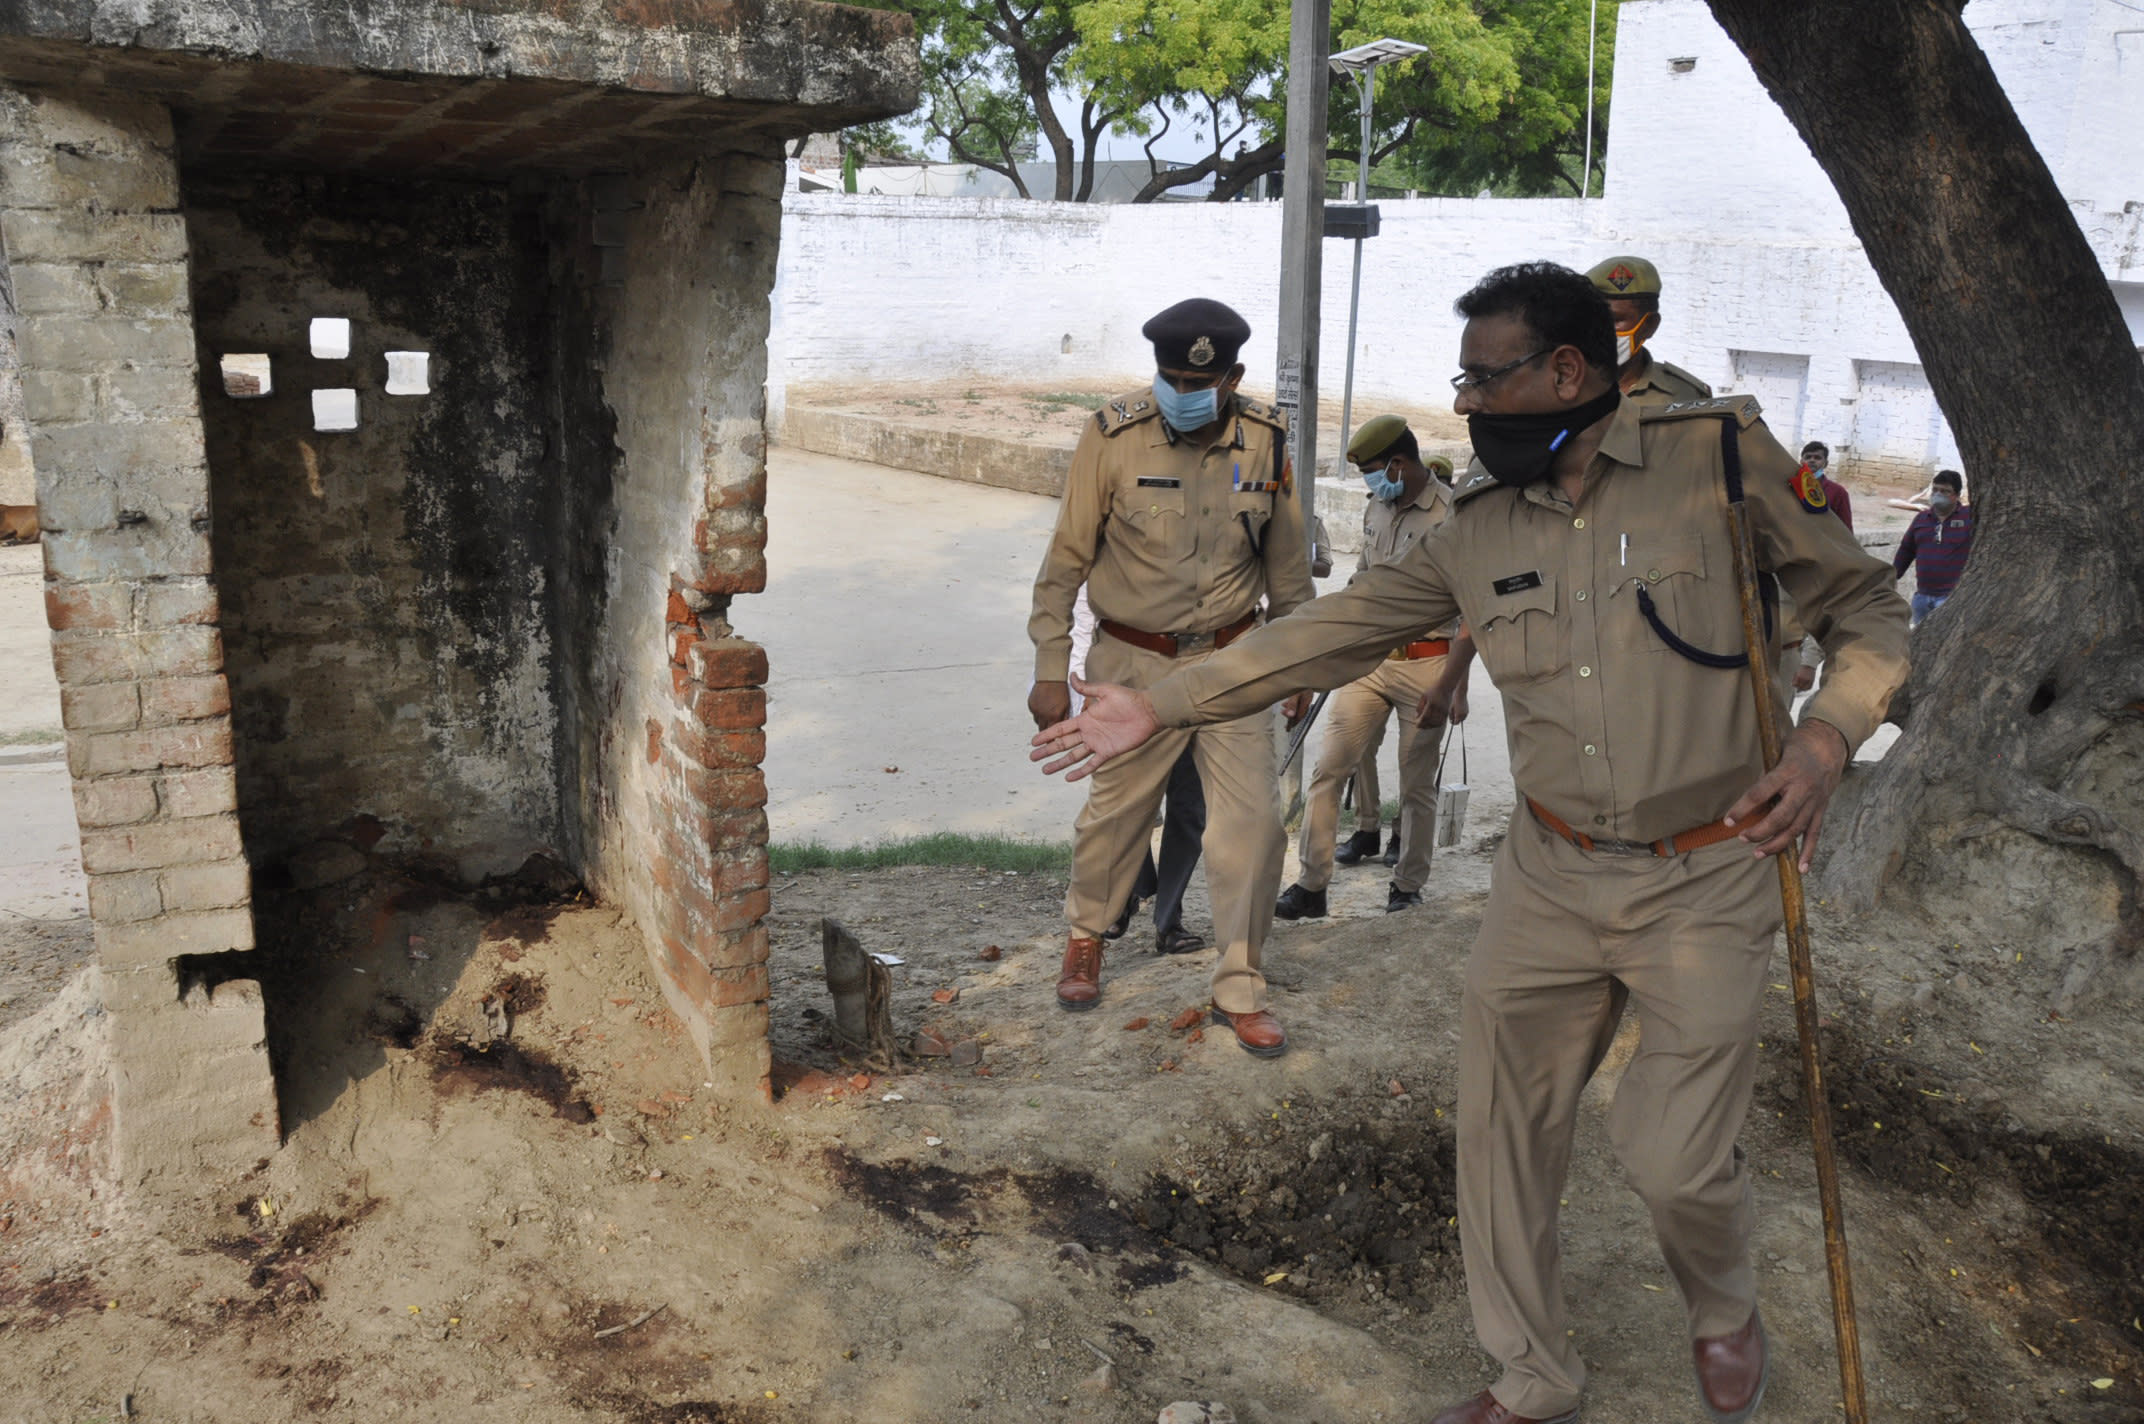 Policemen inspect the scene of an ambush in Kanpur, India, Friday, July 3, 2020. A gang of criminals ambushed and fired on police who had come to arrest them in a northern Indian village early Friday, killing eight of the officers, a government official said. The criminals blocked a road with excavators and fired on the police officers from rooftops, said Awanish Awasthi, an Uttar Pradesh state government spokesman. Five officers were injured and the assailants fled before police reinforcements could reach the area, Awasthi said. (AP Photo)